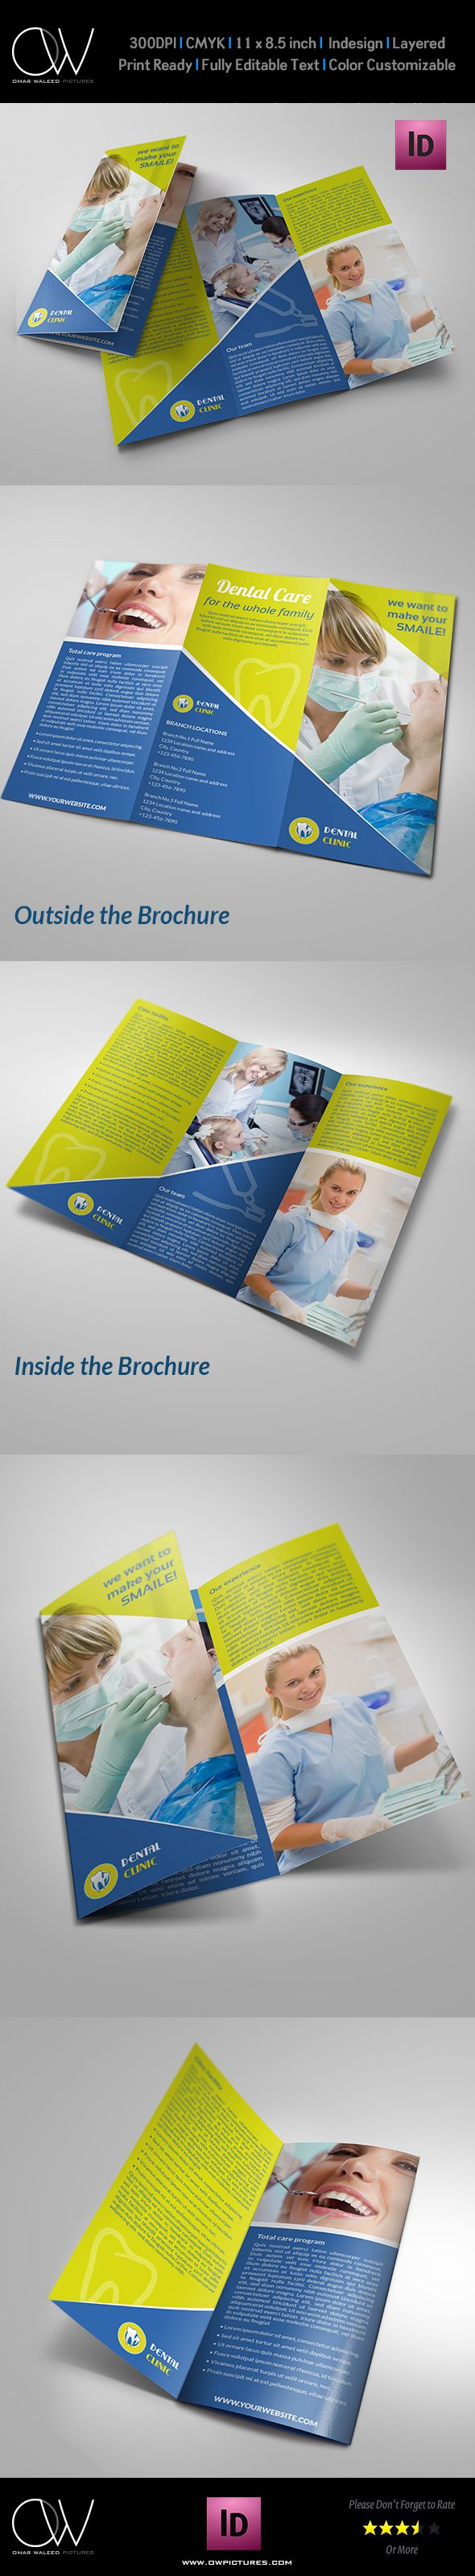 Dental Clinc Tri-Fold Brochure by omaralmudaries.deviantart.com on @deviantART